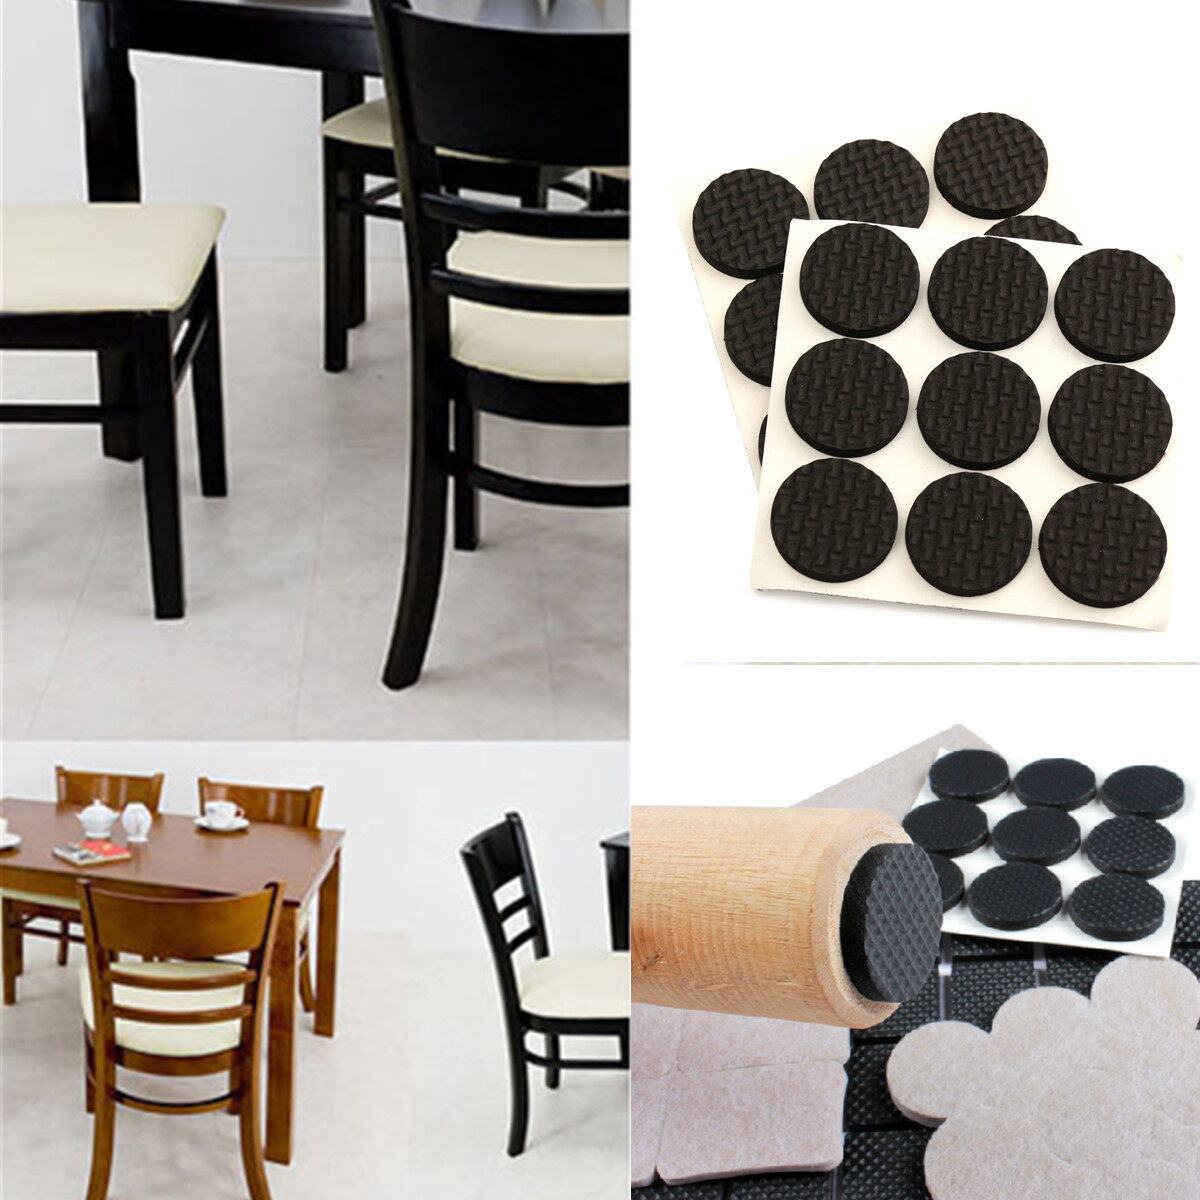 Product Details Of 18pcs Felt Floor Protector Pads For Tables Chair Legs